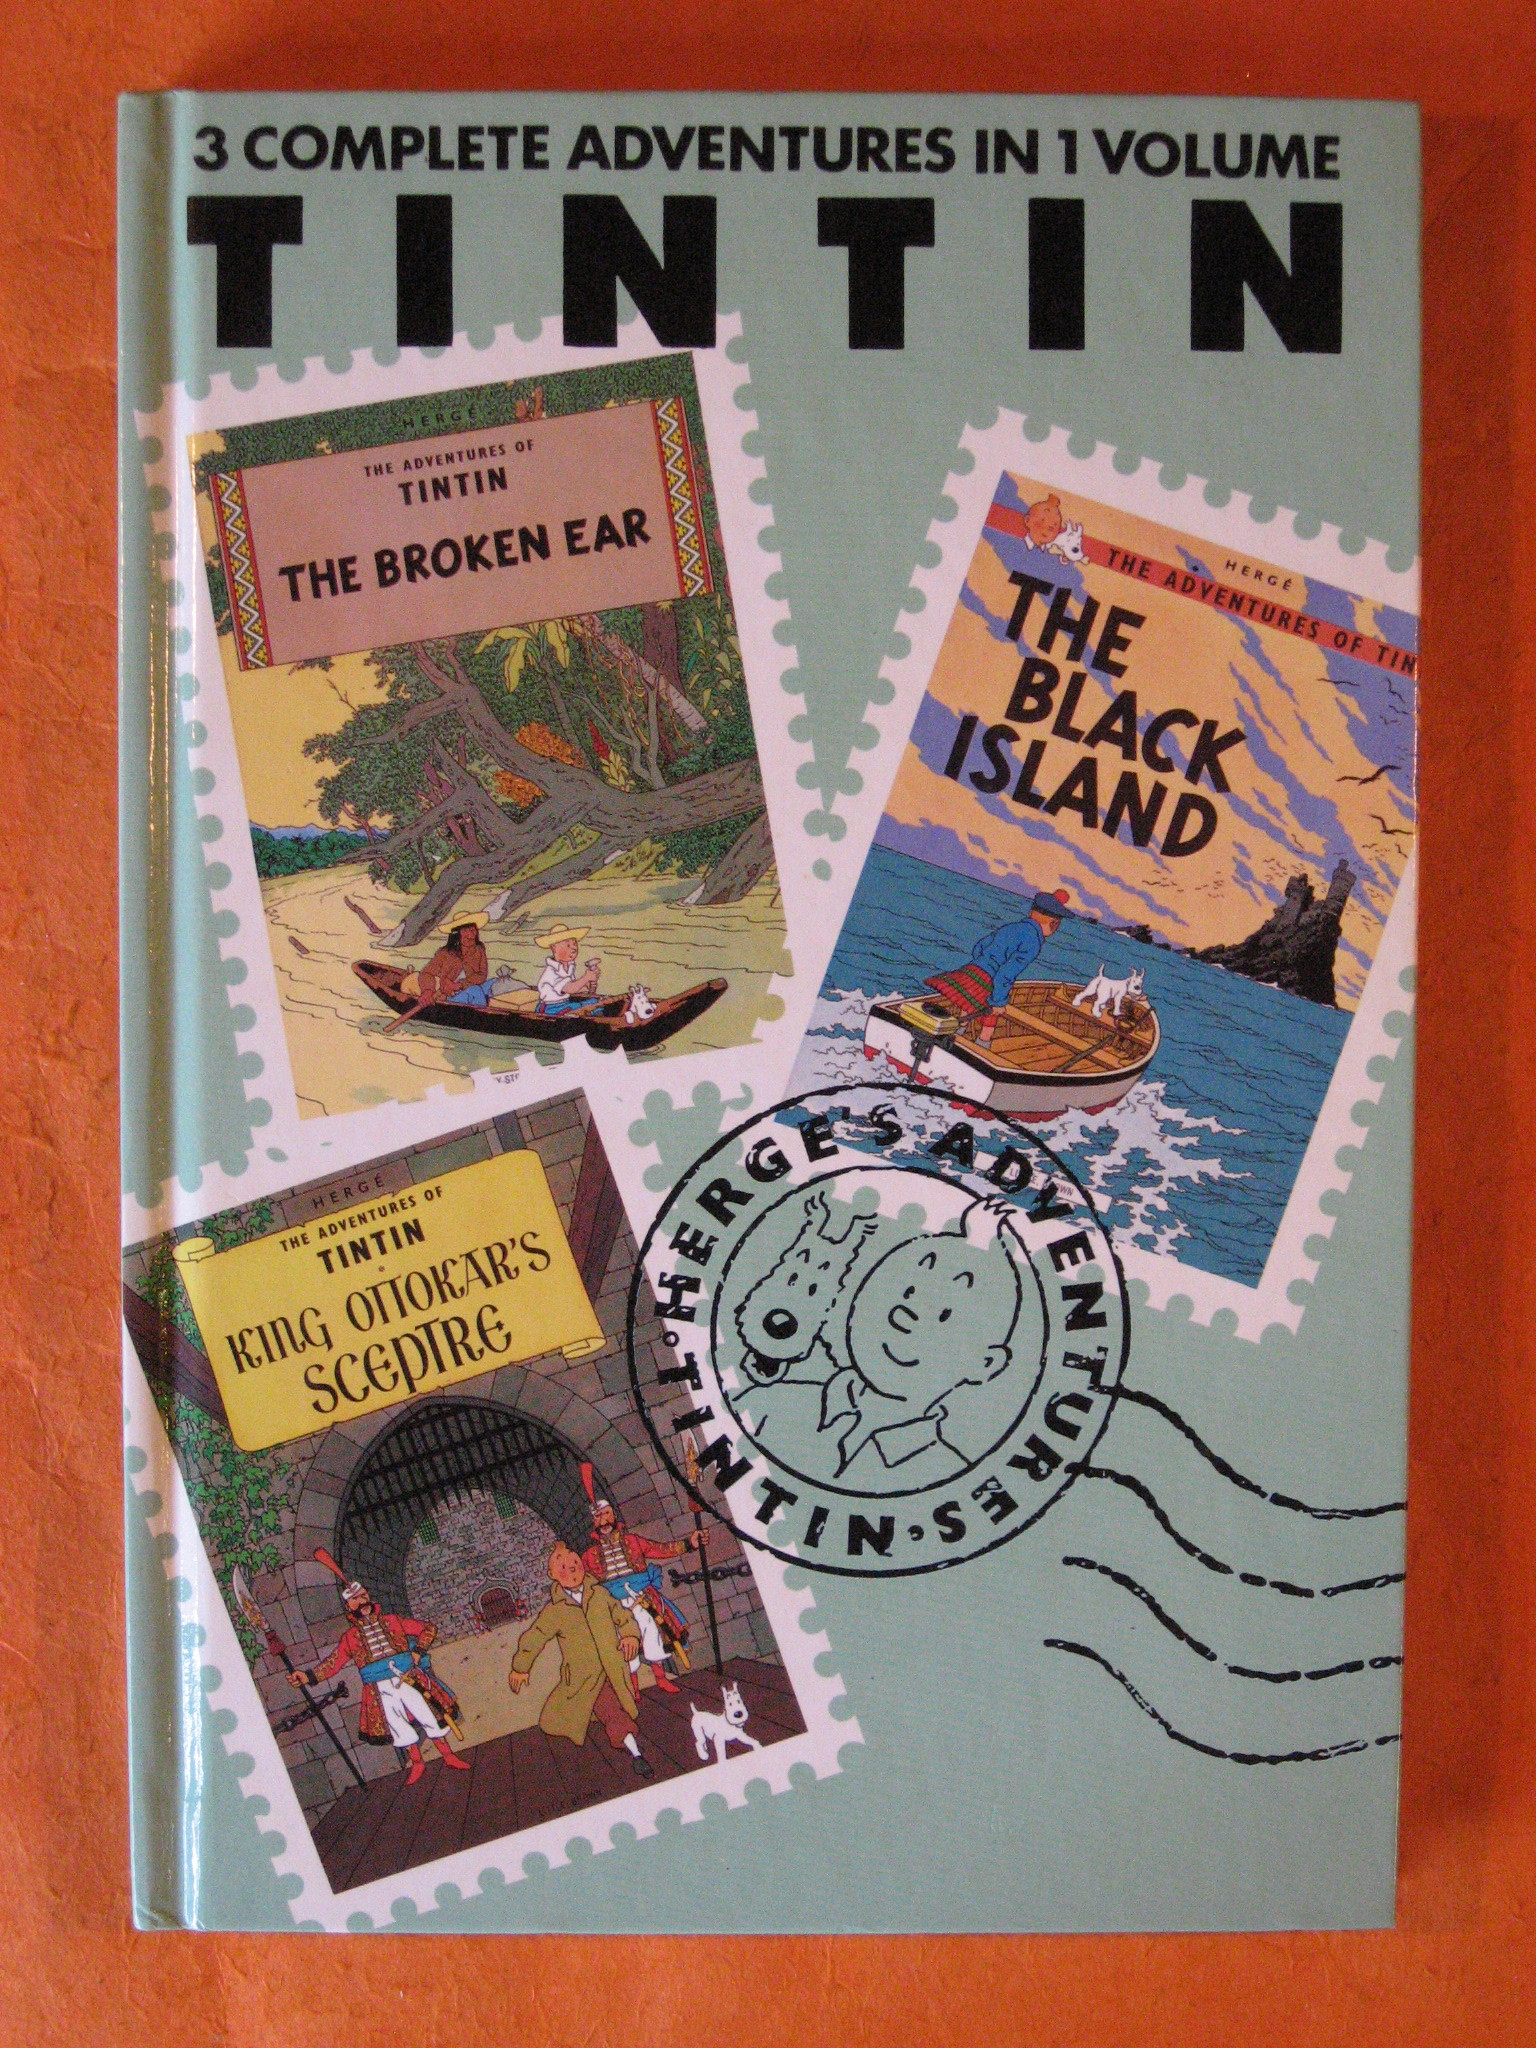 The Adventures of Tintin, Vol. 2: The Broken Ear / The Black Island / King Ottokar's Sceptre (3 Volumes in 1), Hergé